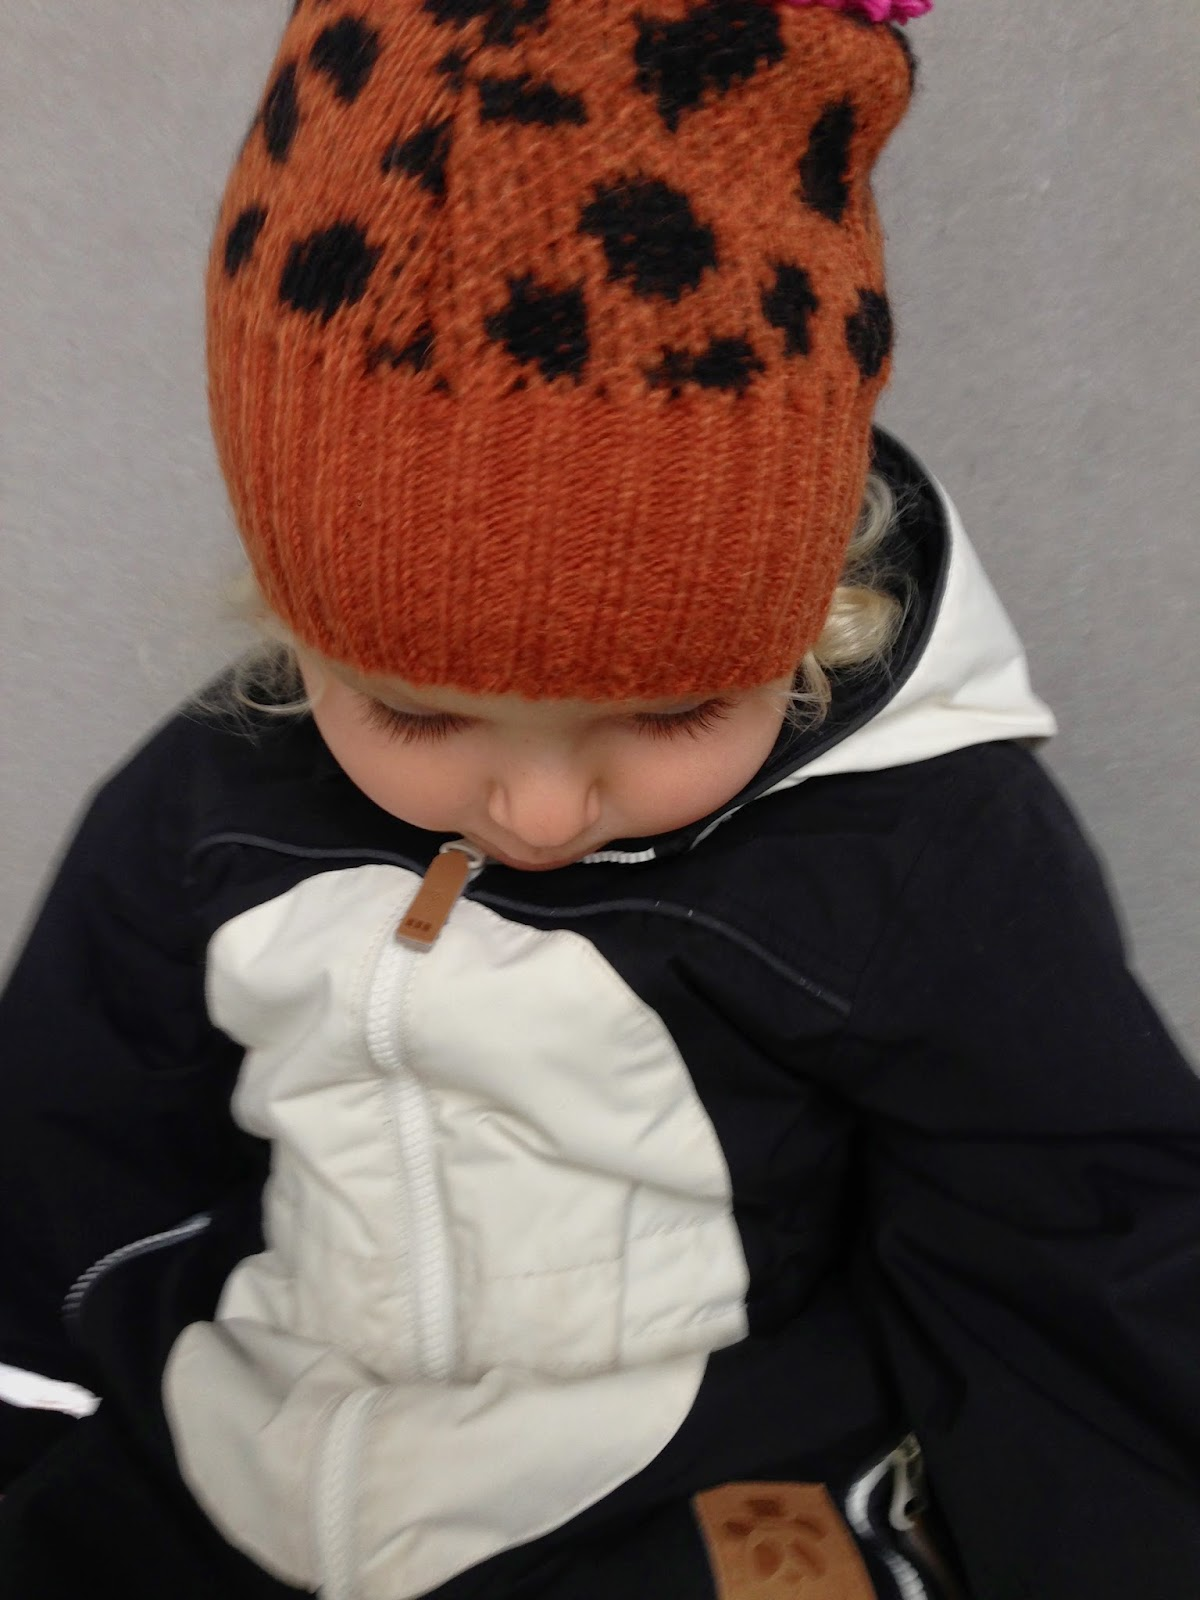 Bobo Choses, knit hat, mohair, 6-7 years, 6-7 år, small sizing, liten storlek, ylle mössa, tofs mössa